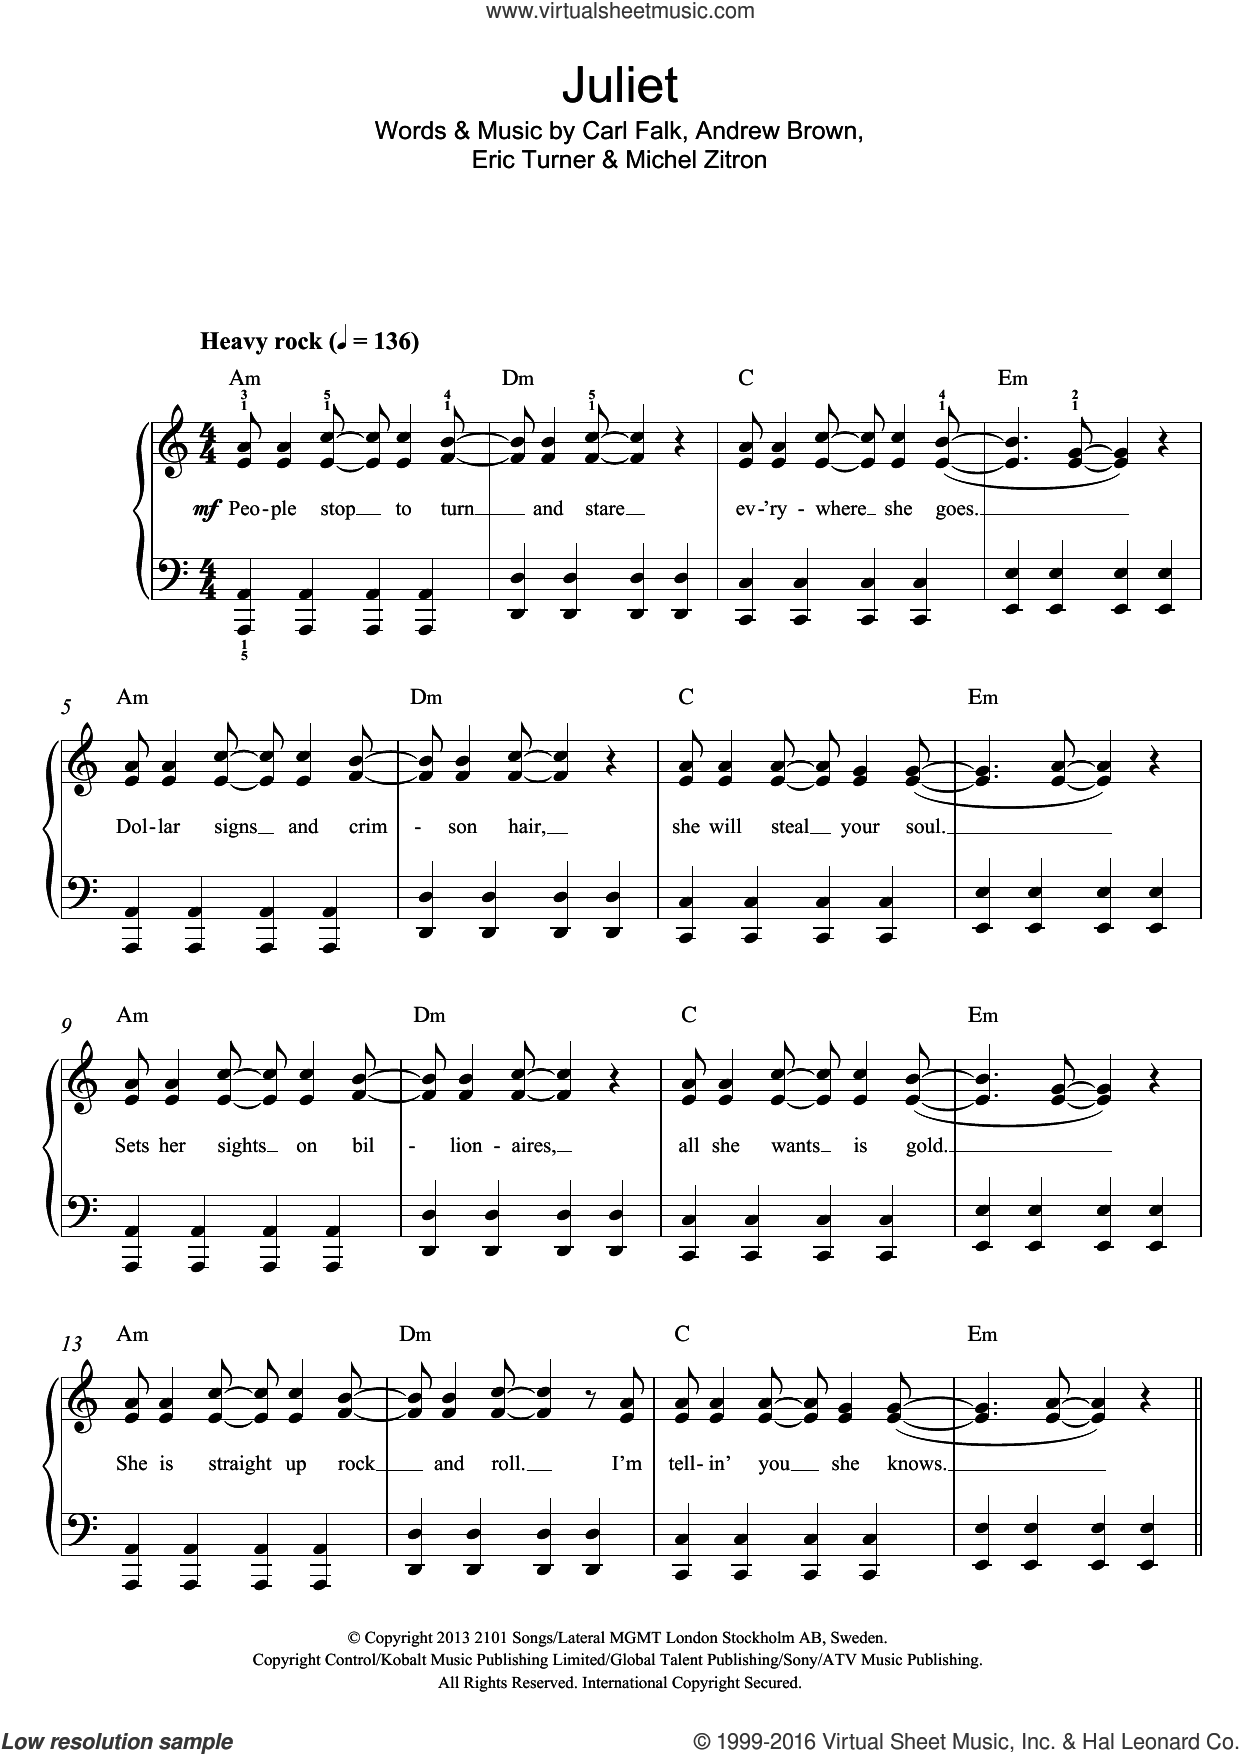 Juliet sheet music for piano solo by LAWSON, Andrew Brown, Carl Falk, Eric Turner and Michel Zitron, easy skill level